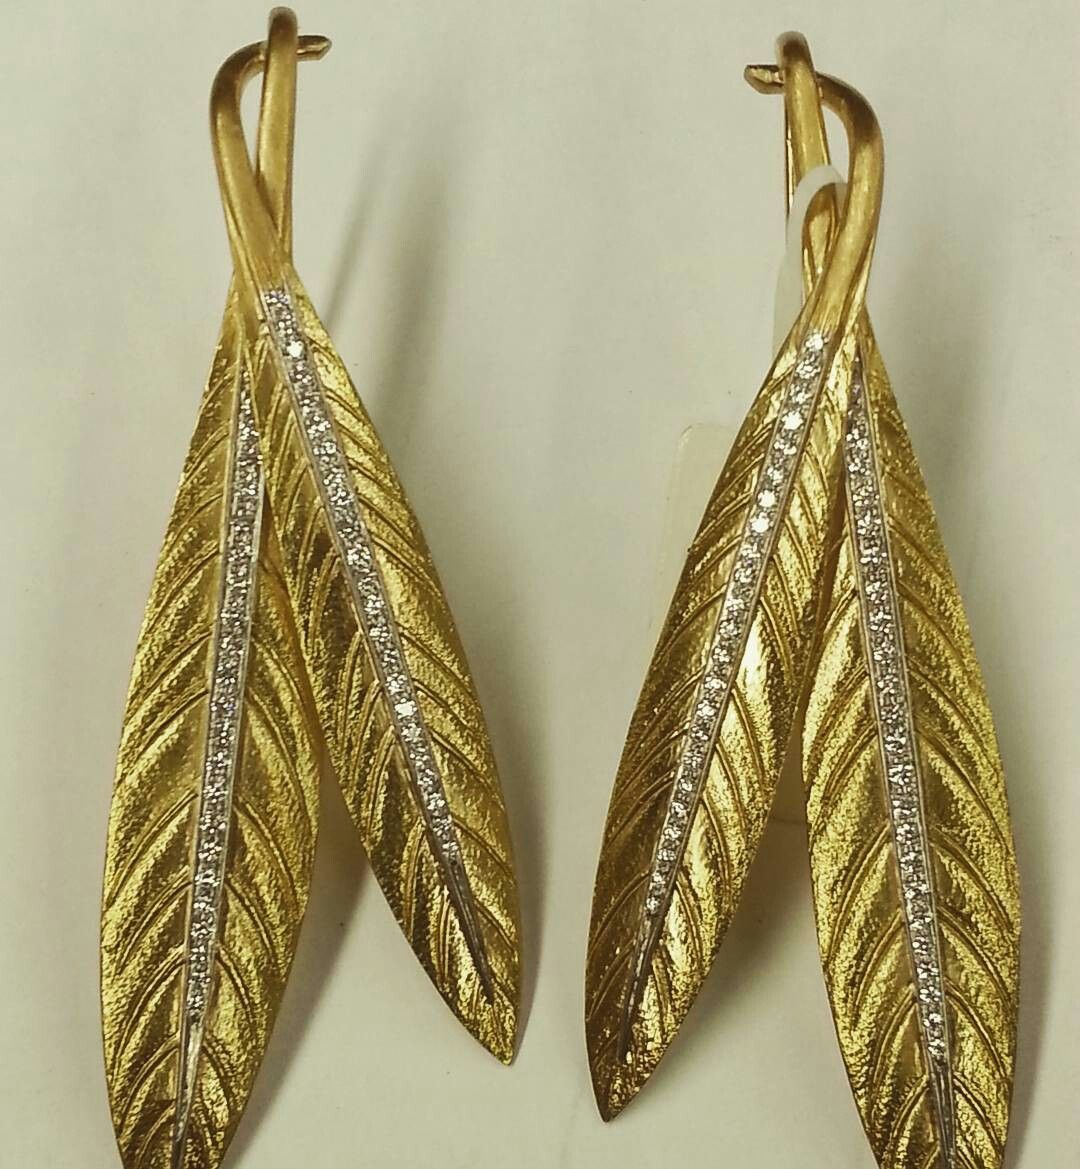 Miguelmonzon kt yellow gold leaf earrings heavy textured